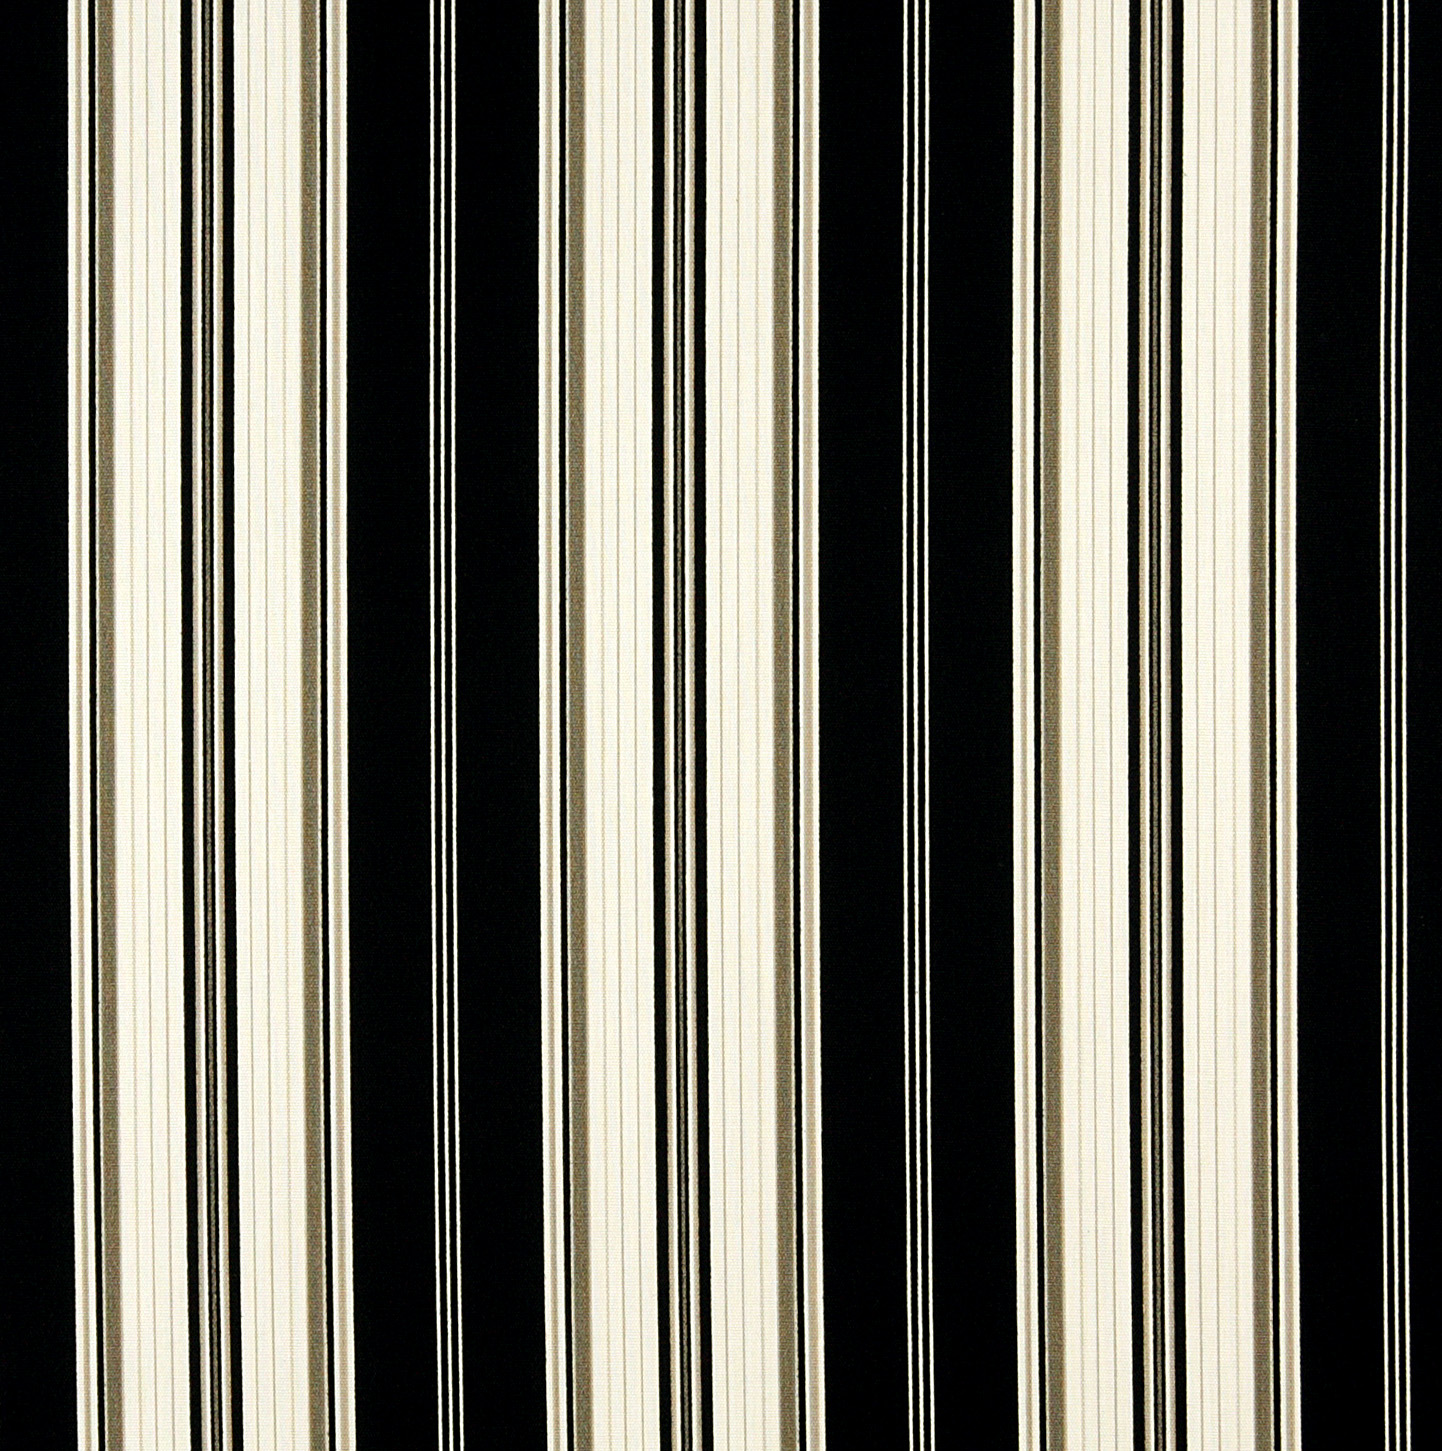 Onyx Stripe Black And White Stripes Marine Upholstery Fabric